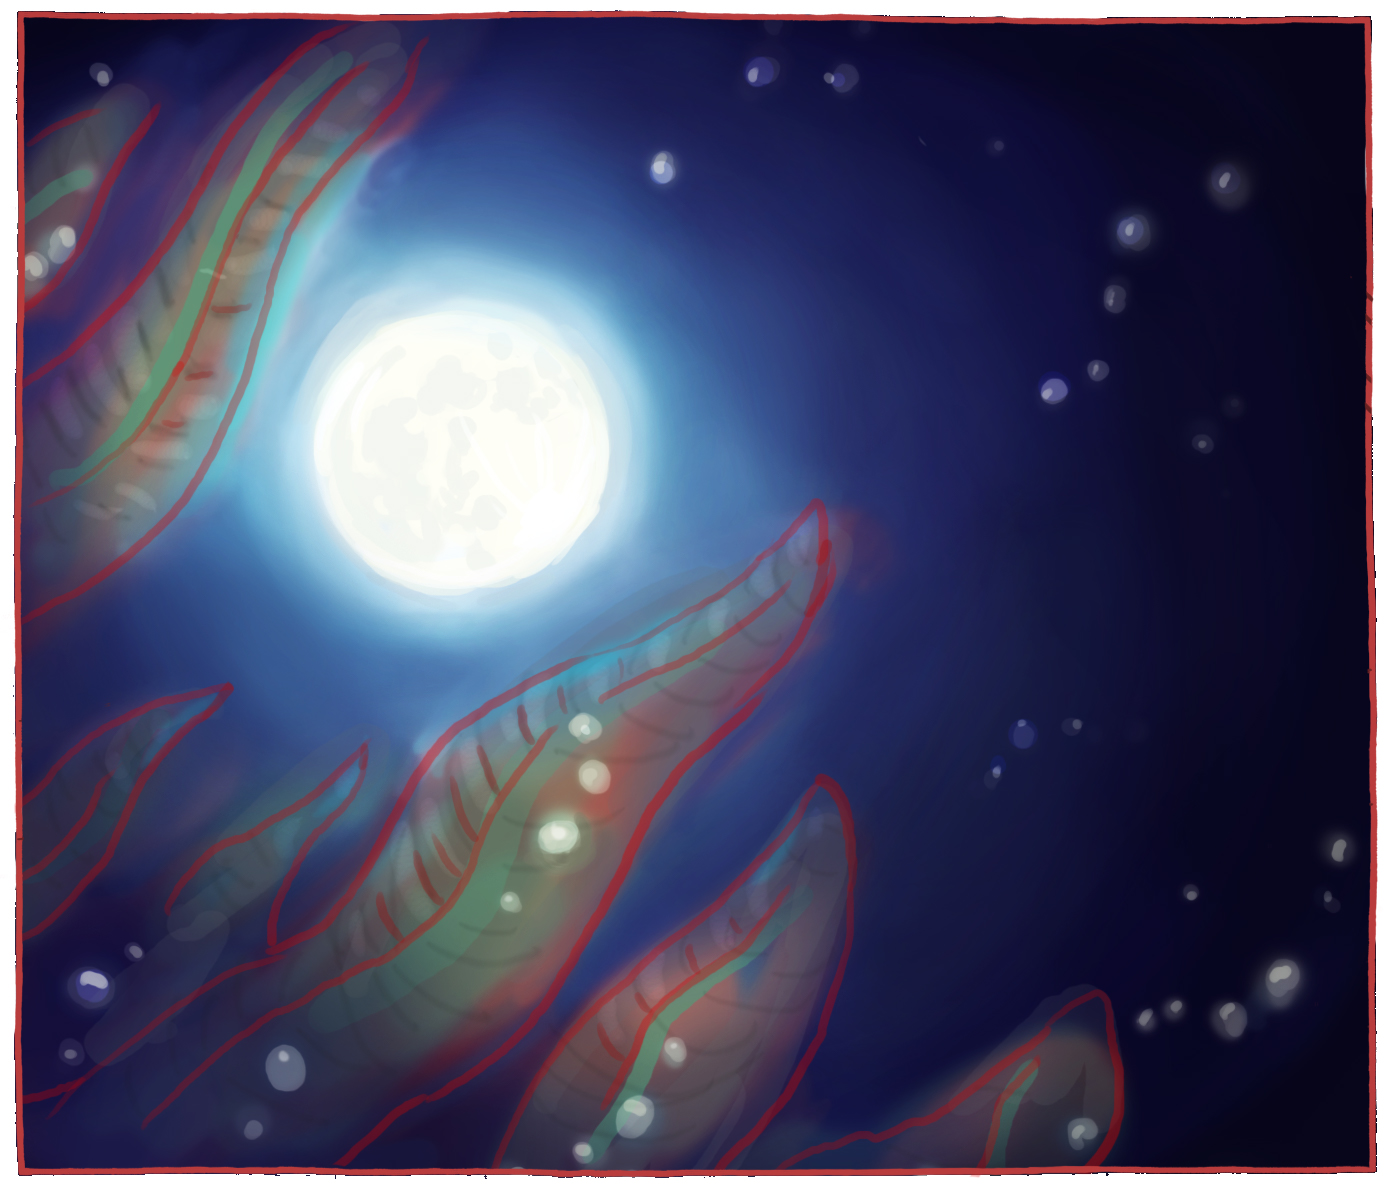 Concept 5: Ediacaran fauna shot from underwater, with a view of the moon